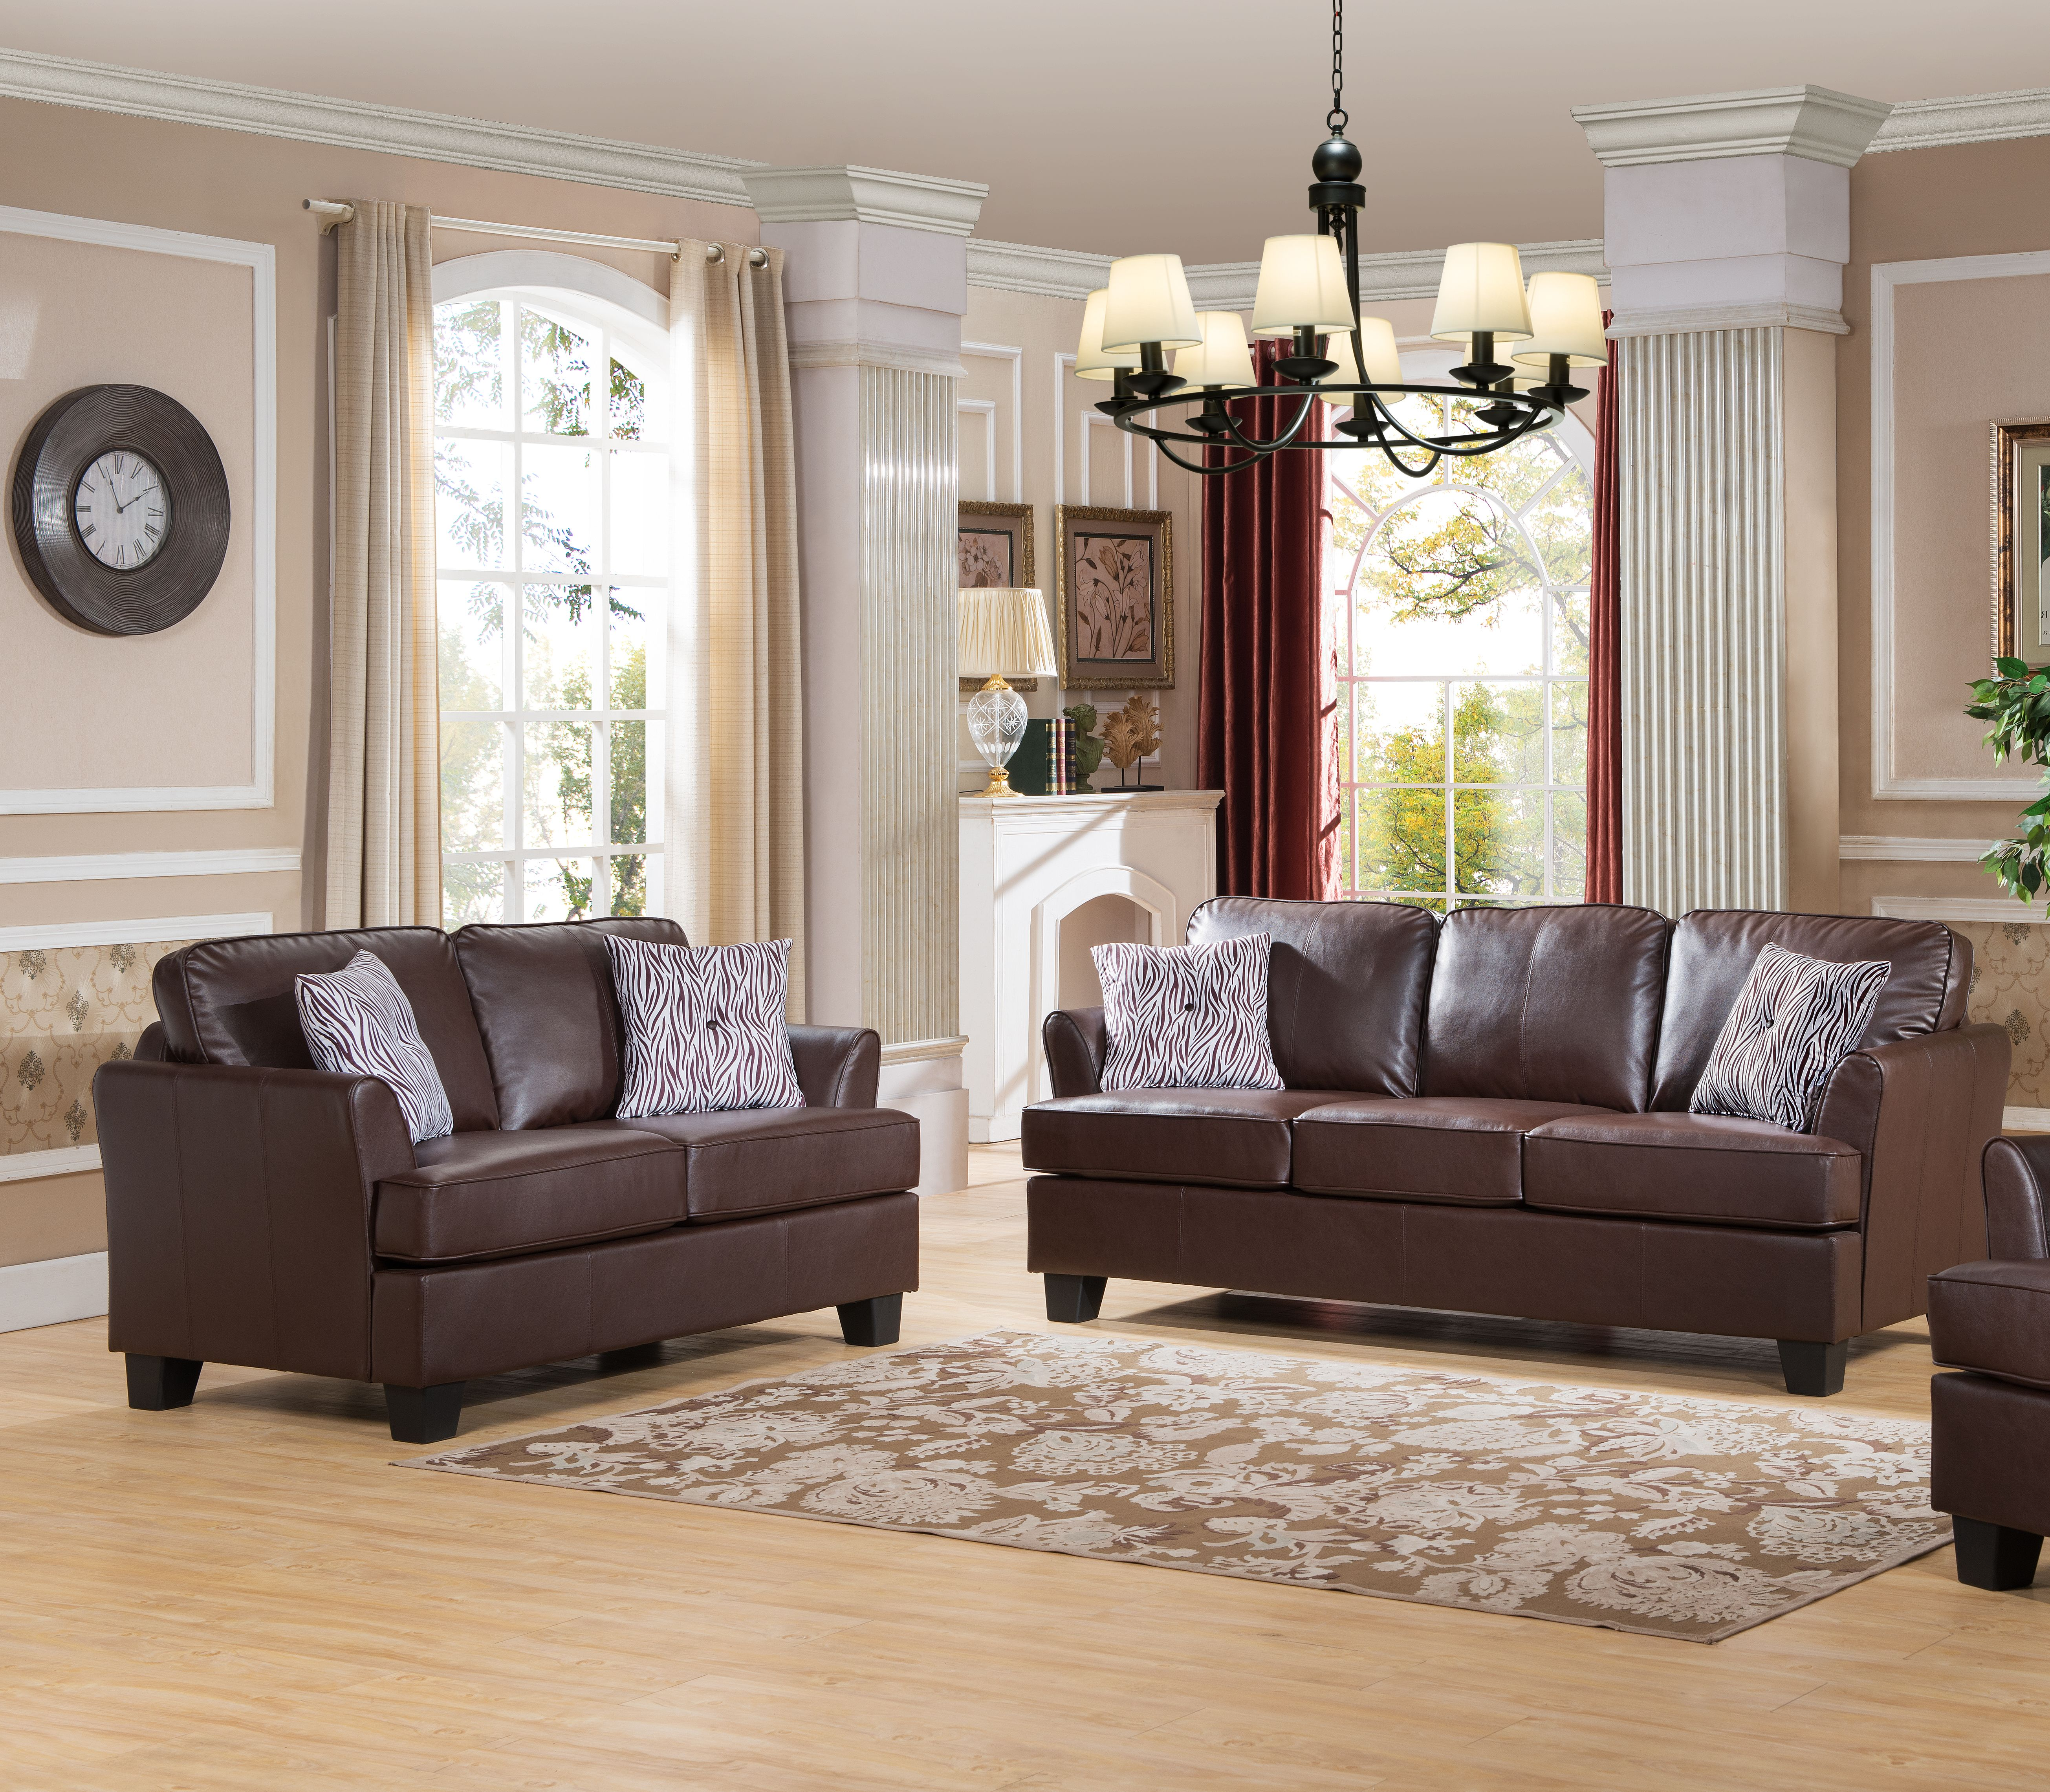 Superieur Details About Brown Upholstered Faux Leather Wood Stationary Living Room  Set (Loveseat, Sofa)